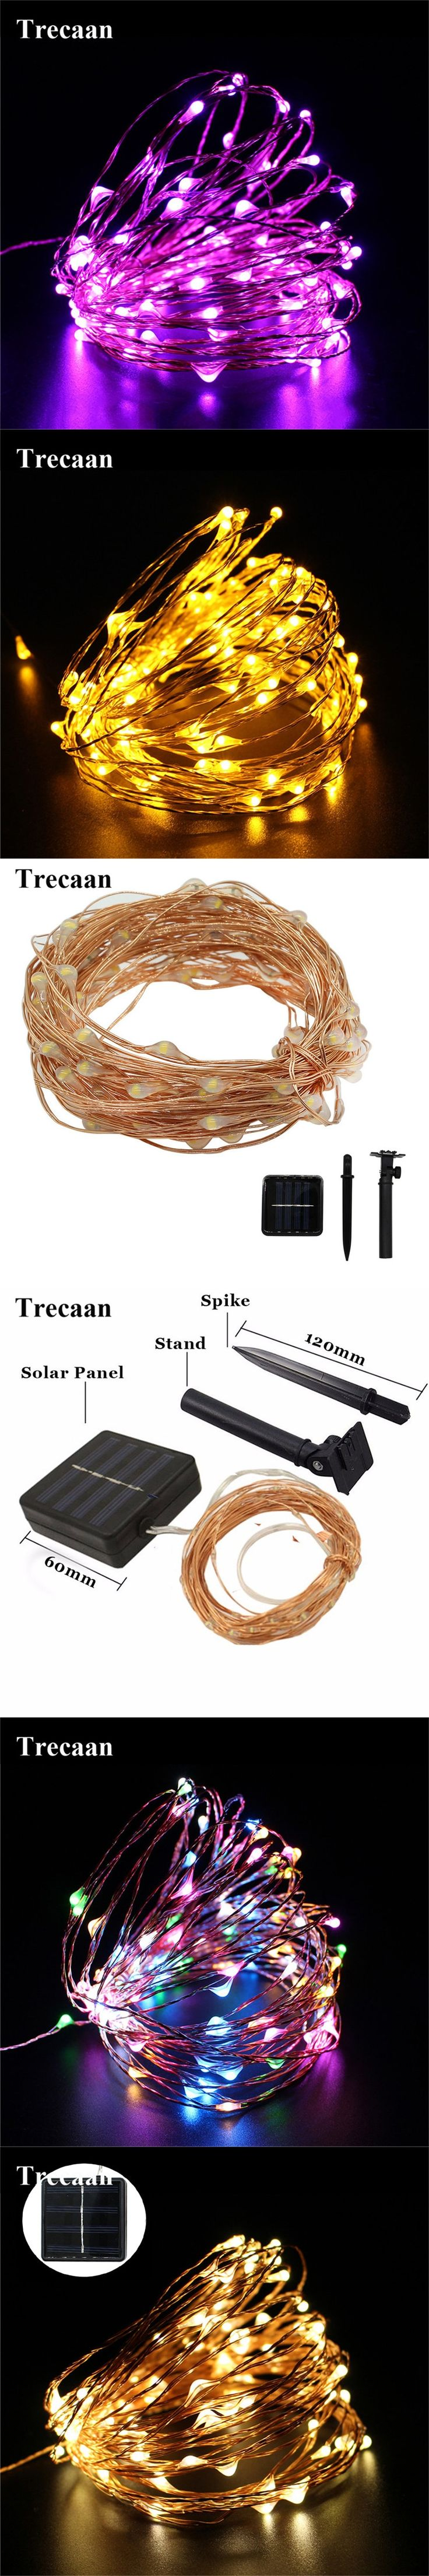 10M/15M/20M Copper wire Solar led string light Waterproof Wire Rope Lights Outdoor Landscape Patio Garden Camping Party